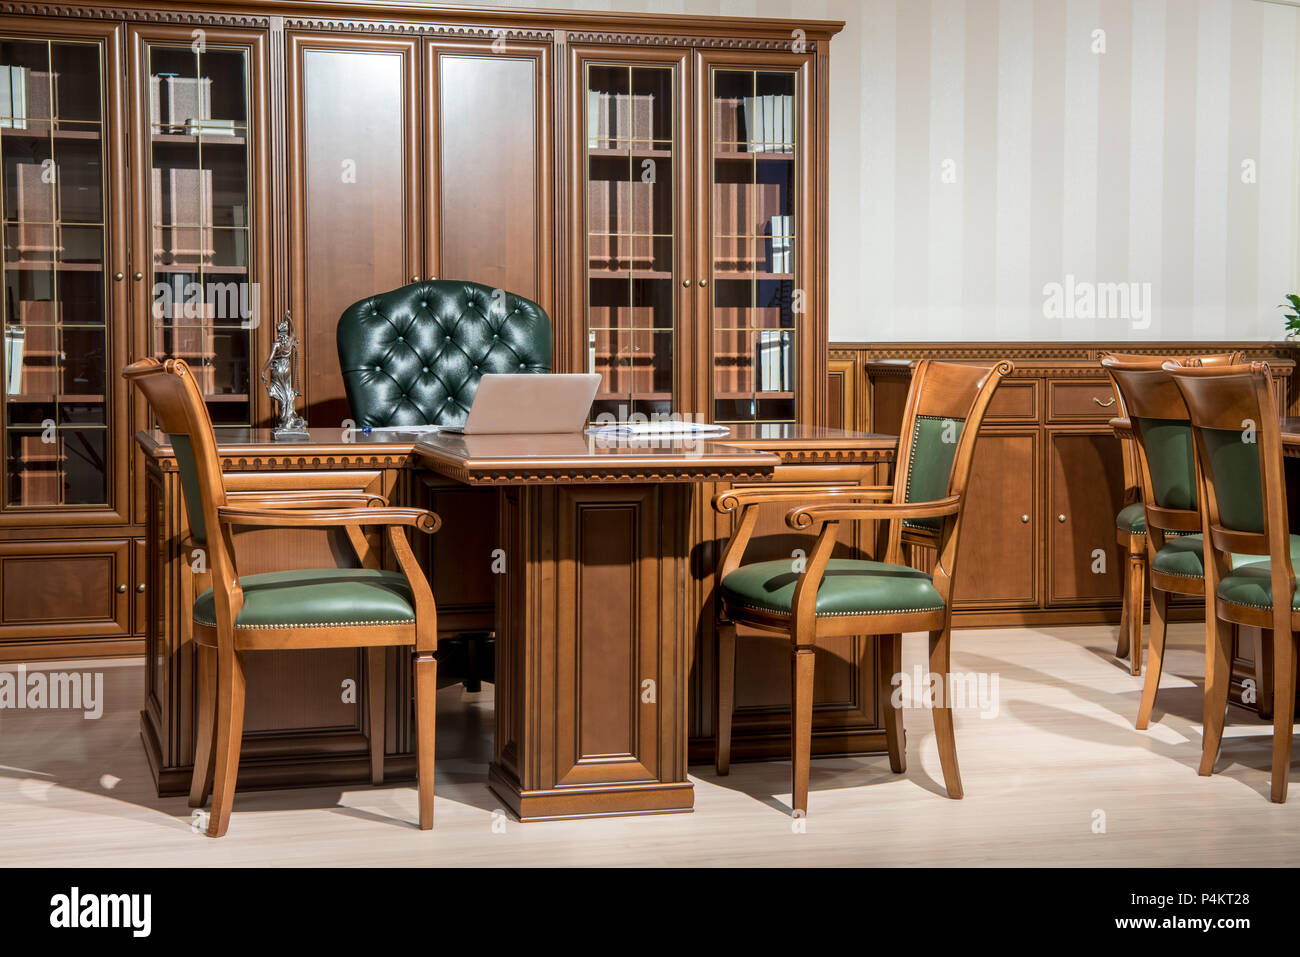 Picture of: Interior Of Office Room With Chairs And Laptop On Wooden Table In Classic Design Stock Photo Alamy